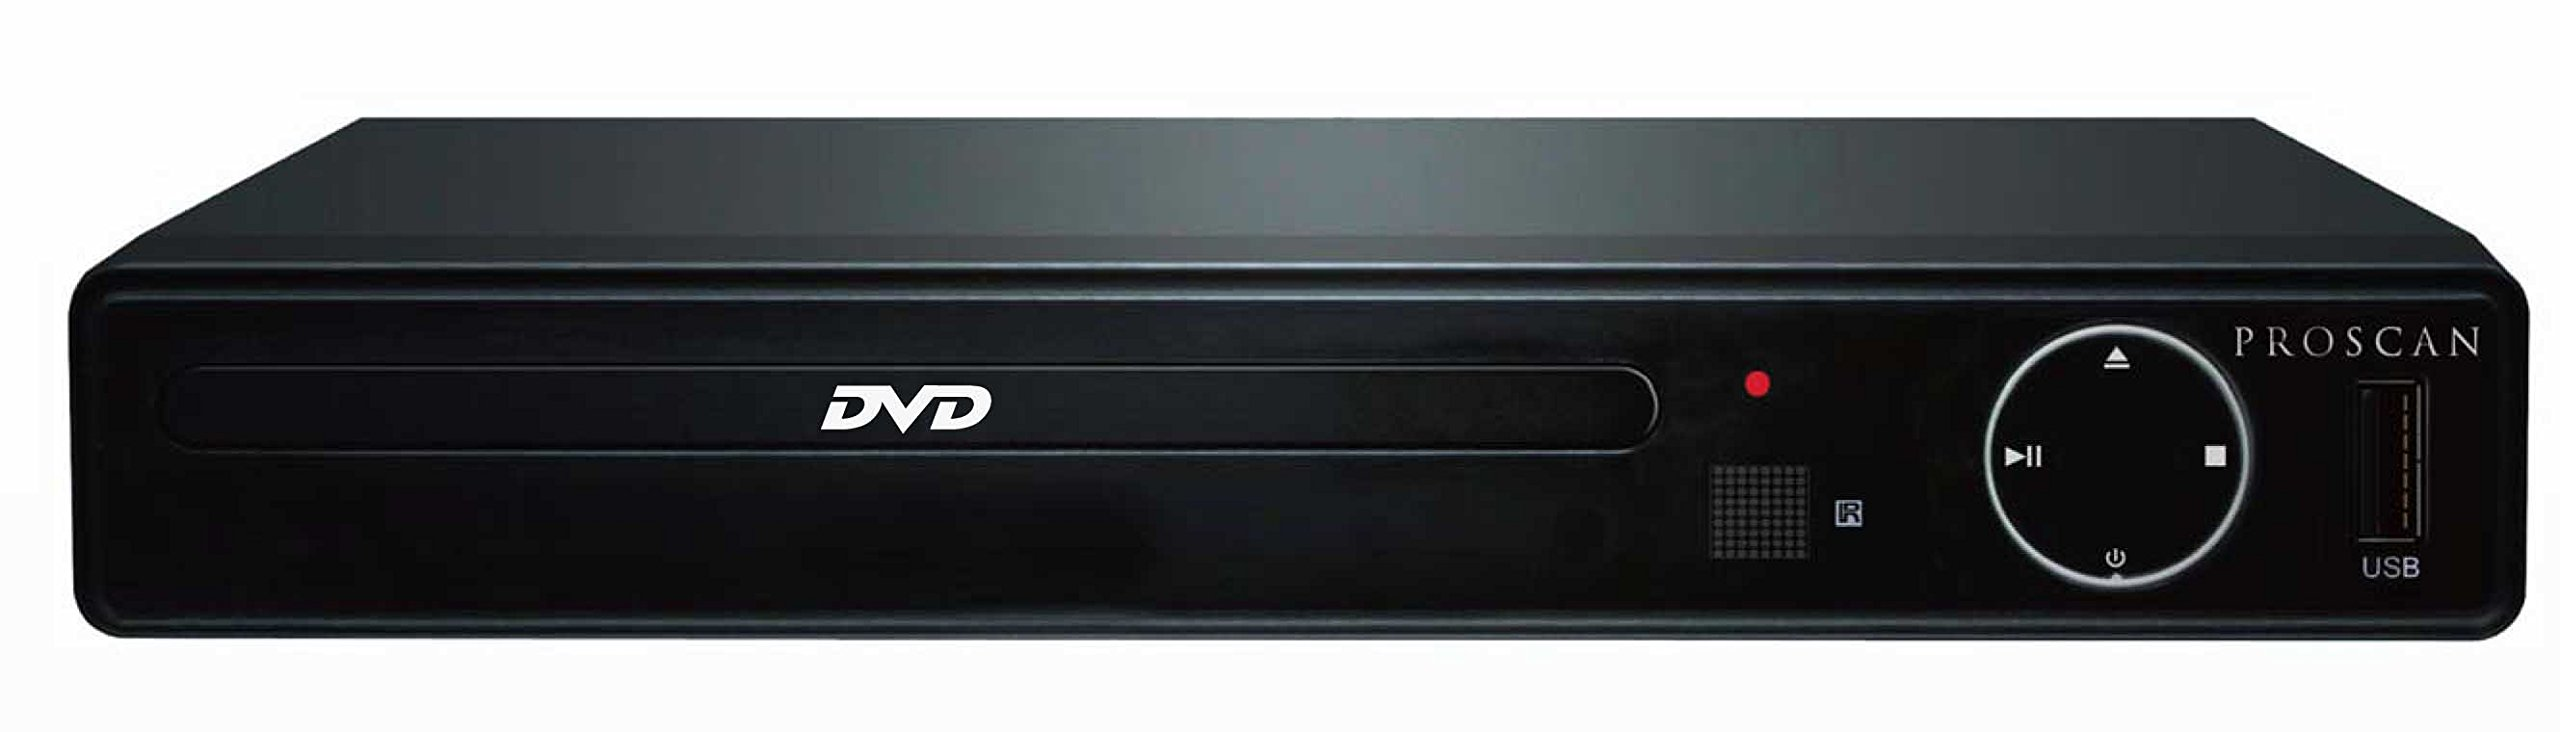 Proscan DVD Player with HDMI + USB Ports